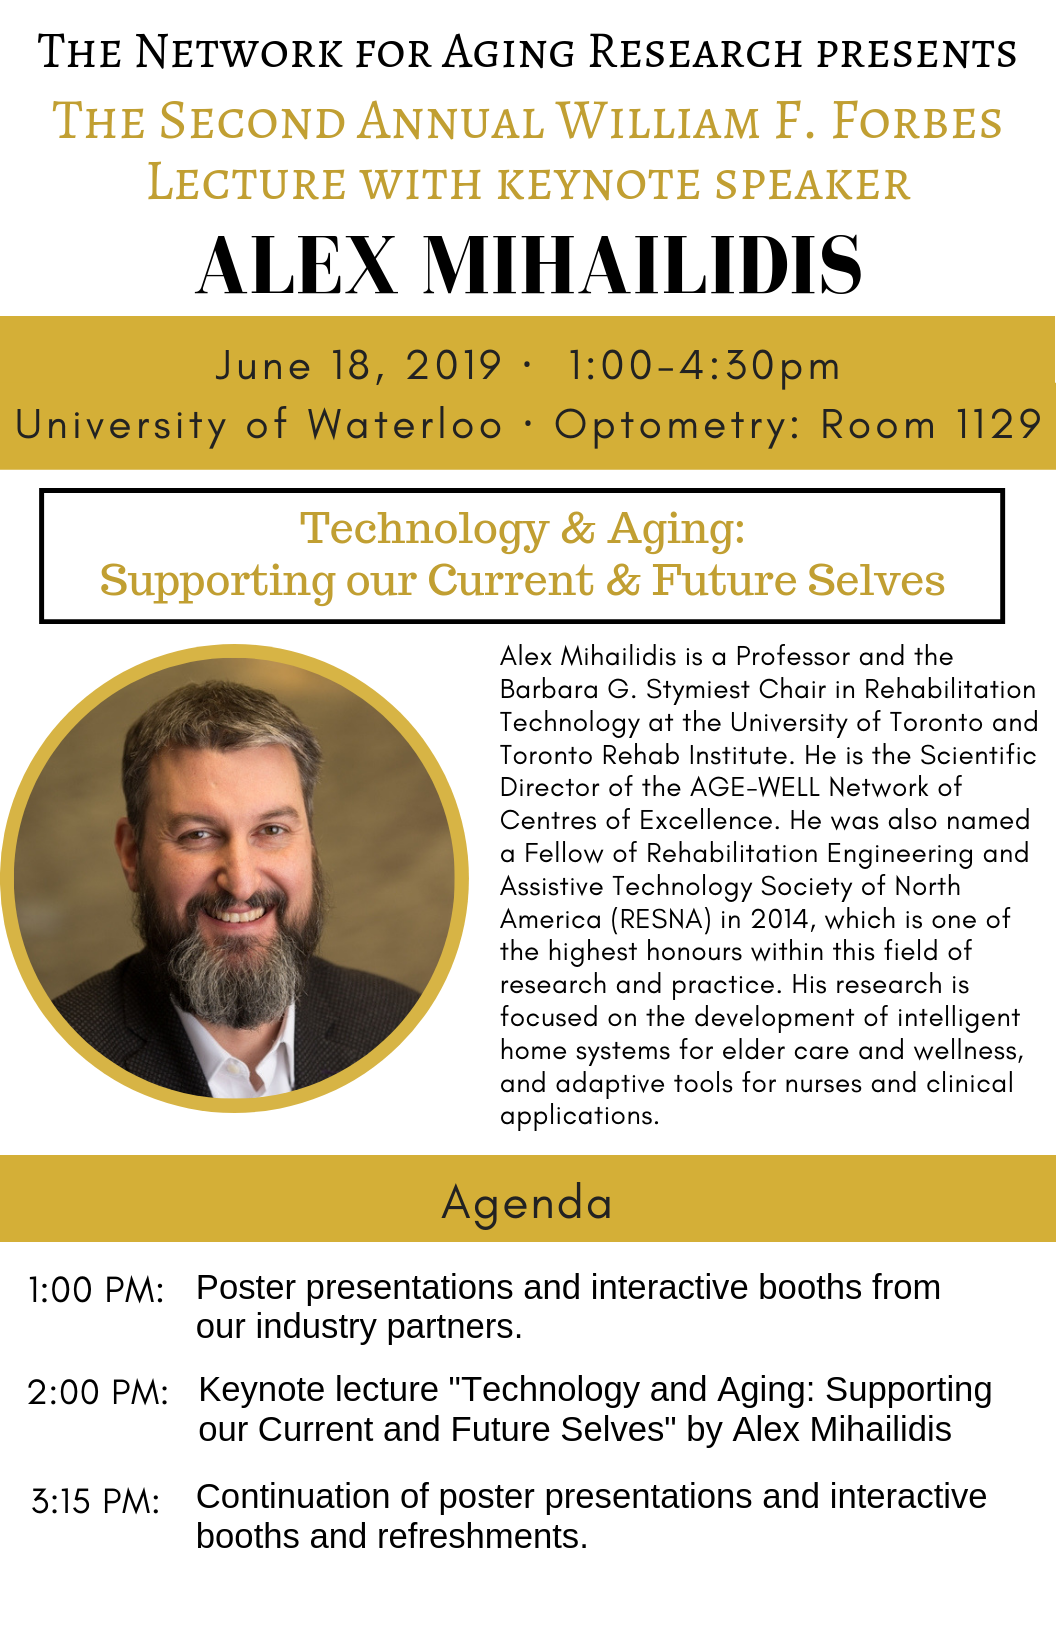 The Network for aging research presents The second annual william F. Forbes lecture with keynote speaker Alex Mihailidis